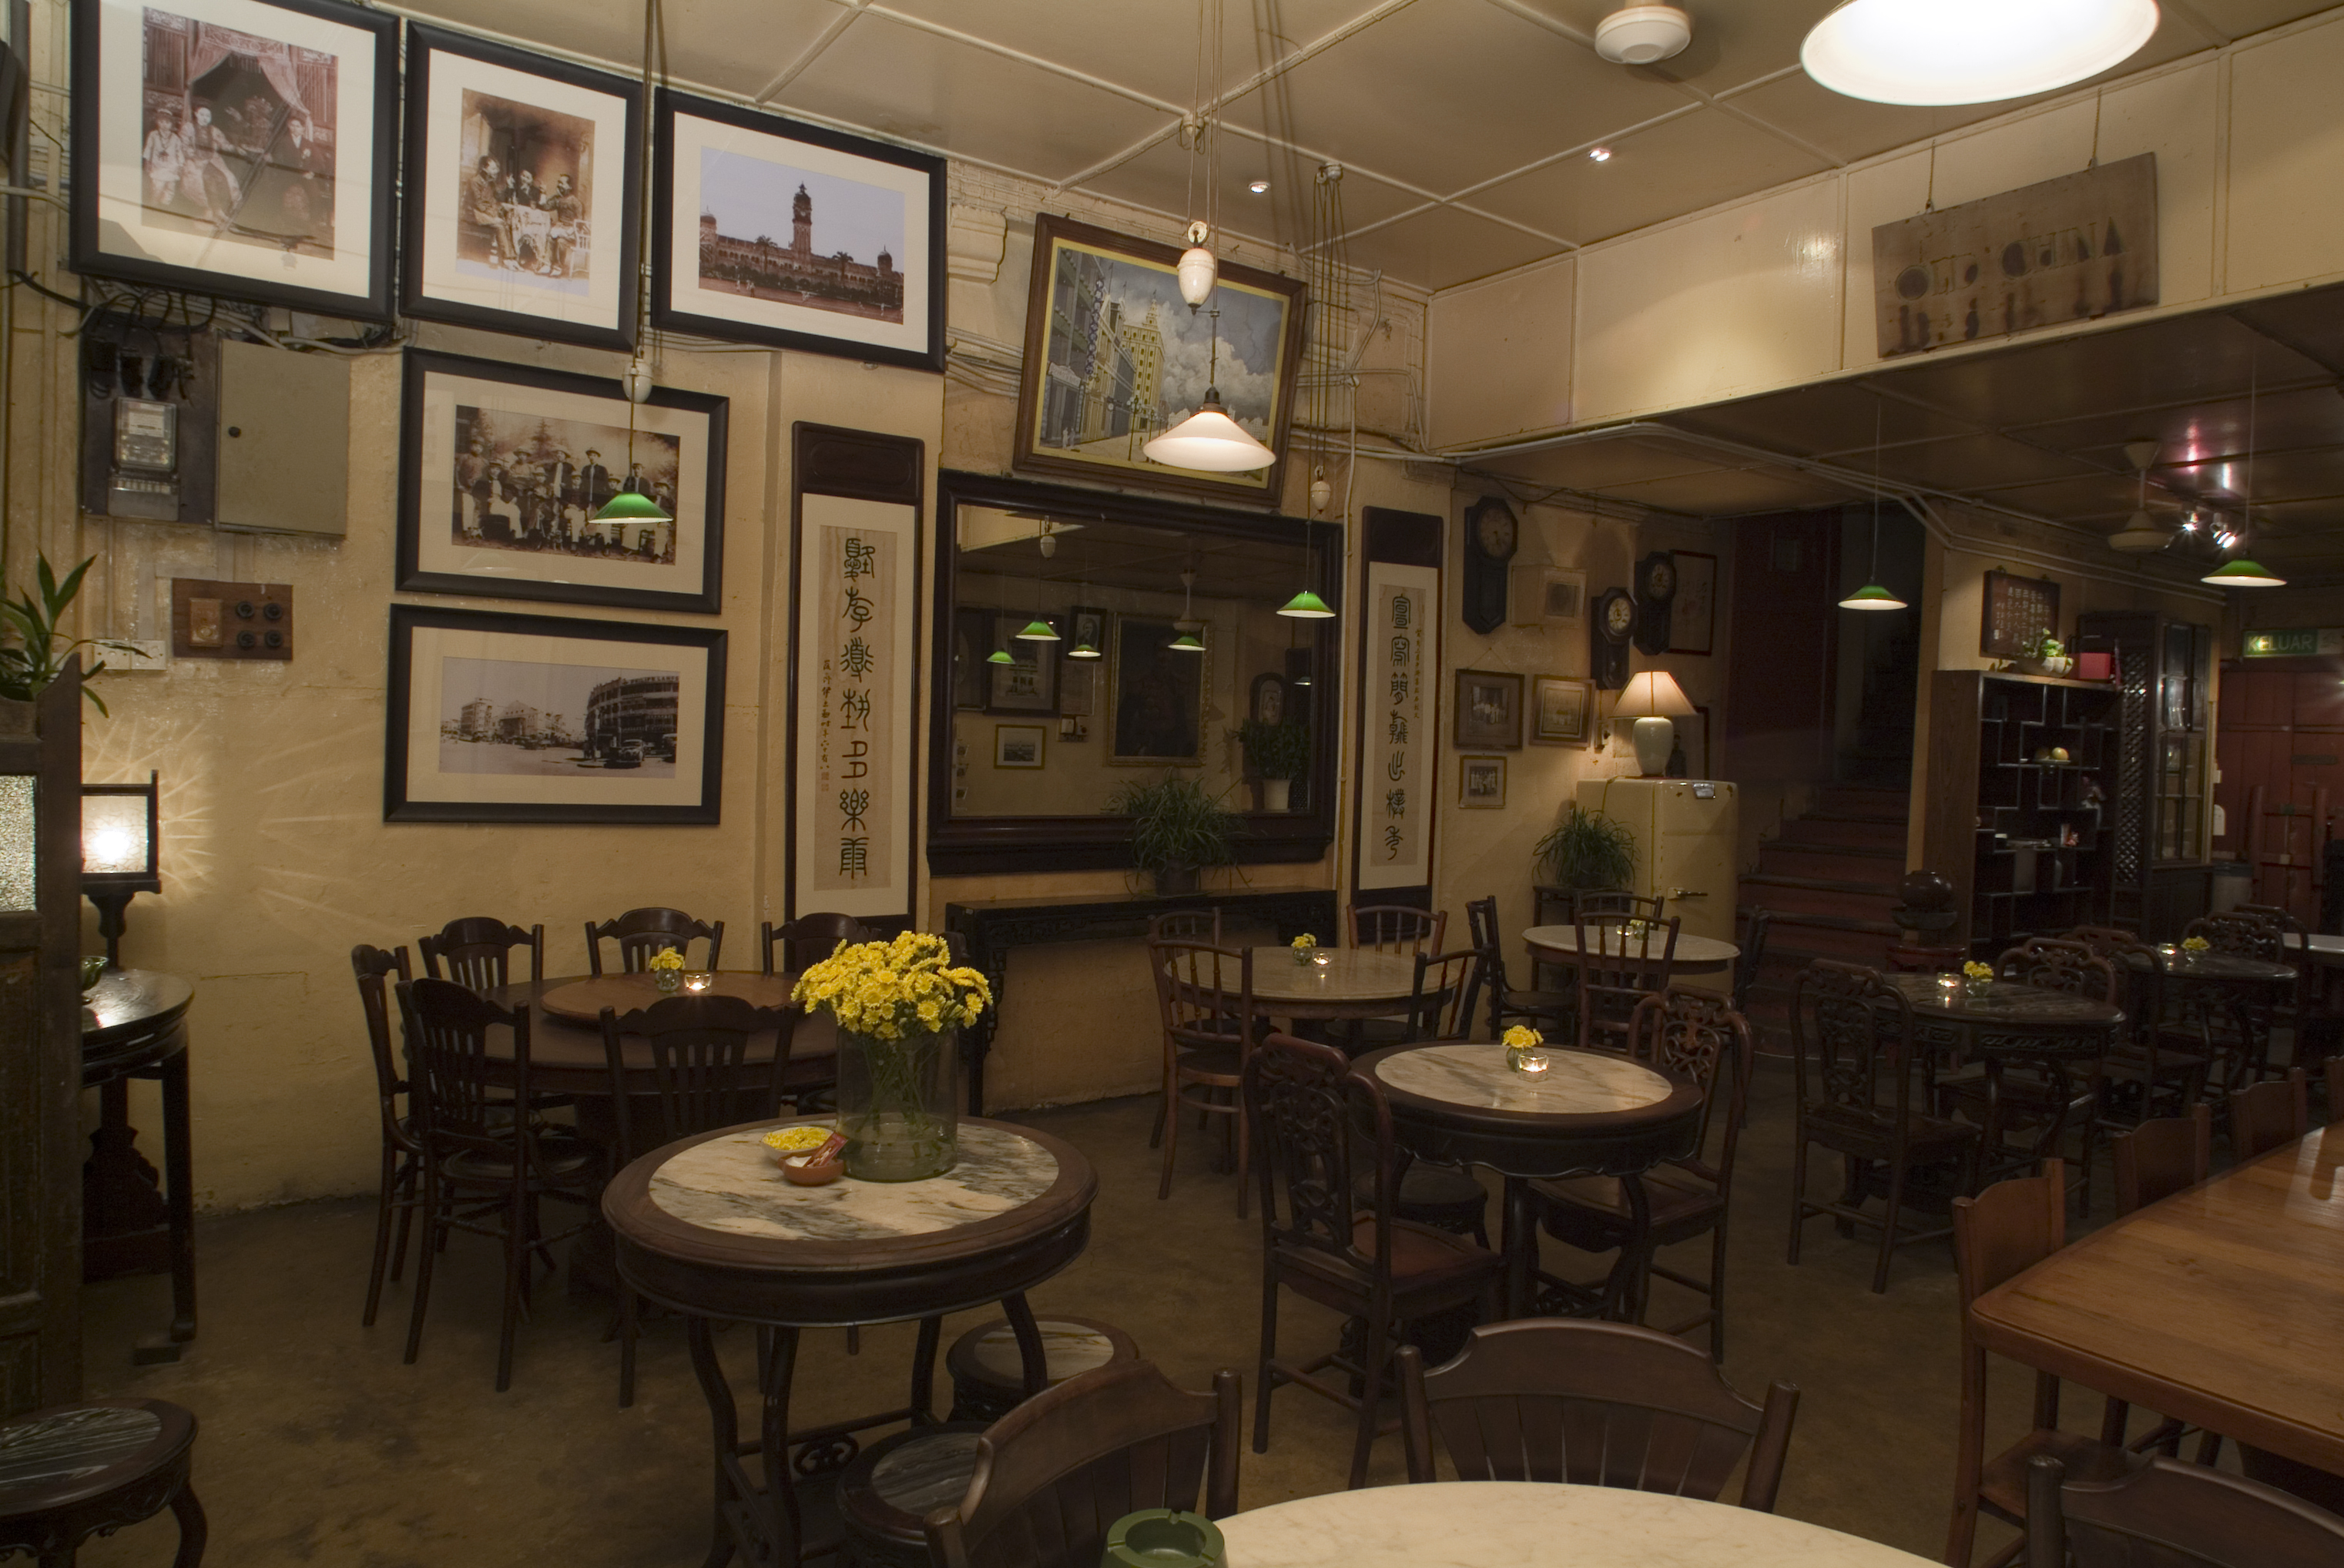 Old China Cafe | Photo Gallery